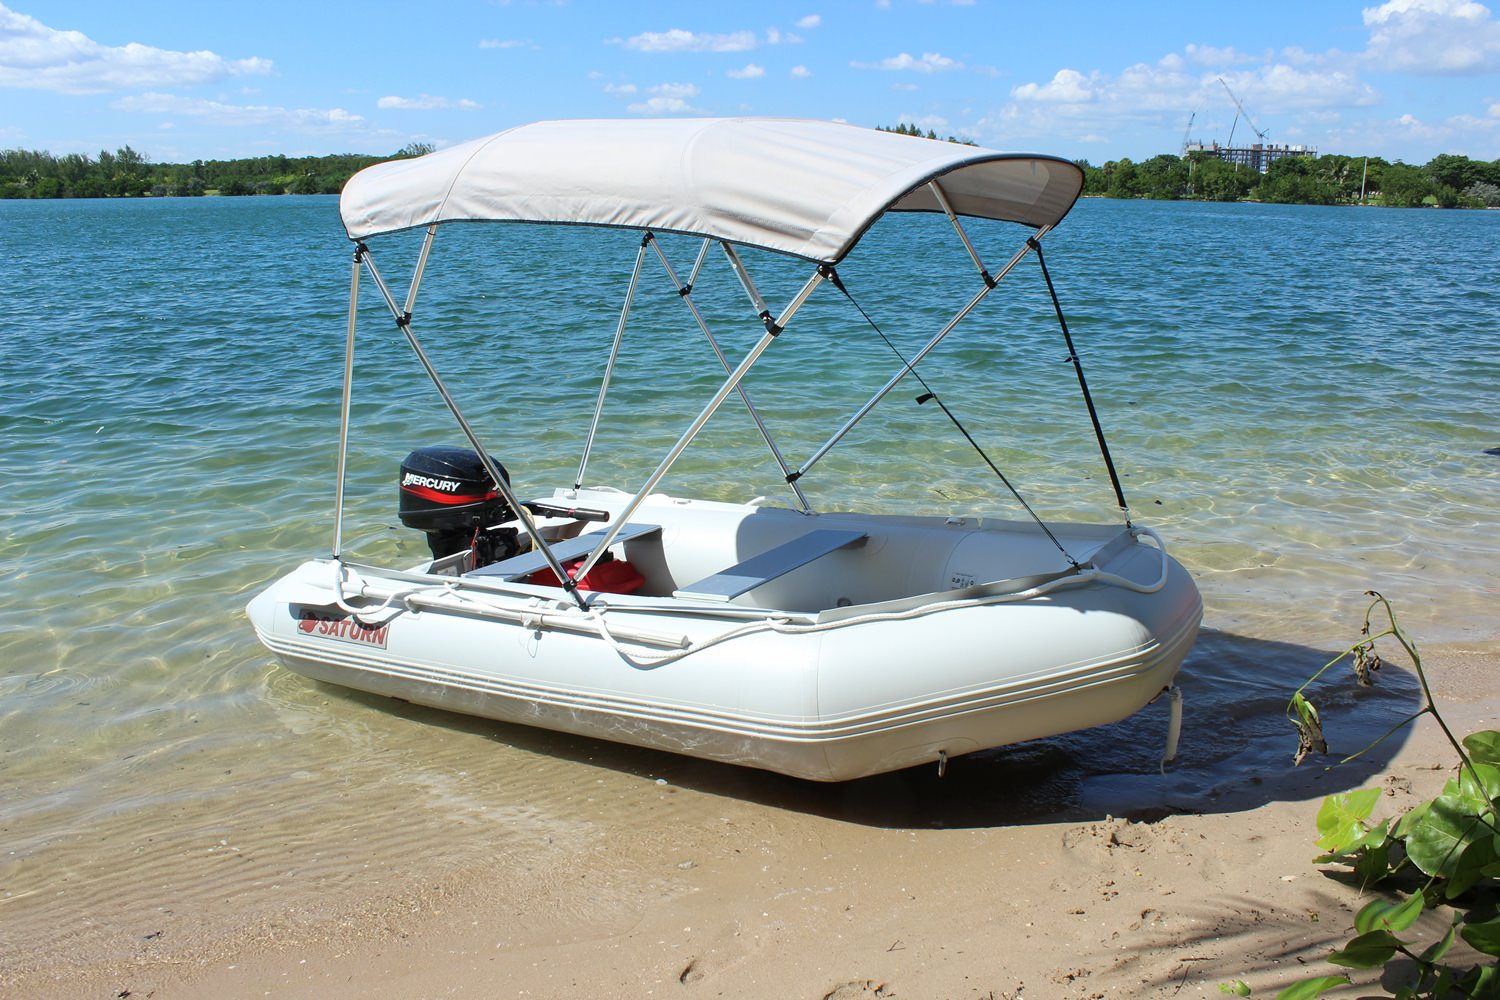 Dinghy Boat With Motor Images